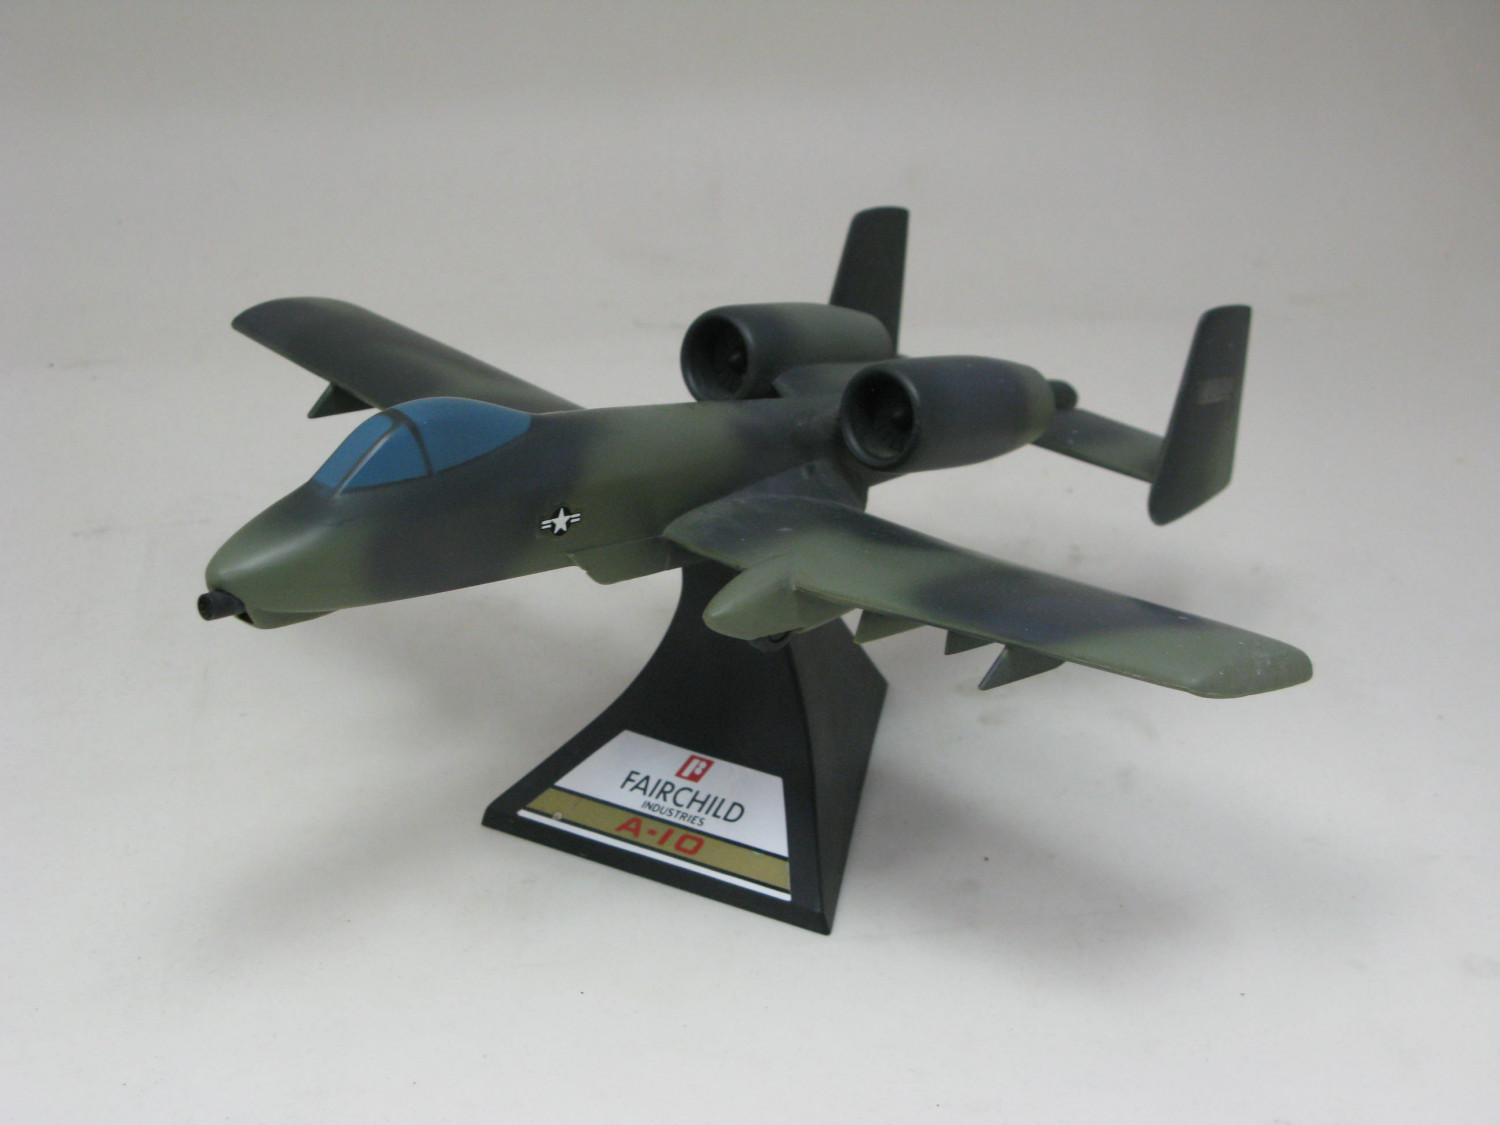 Model of Fairchild A-10